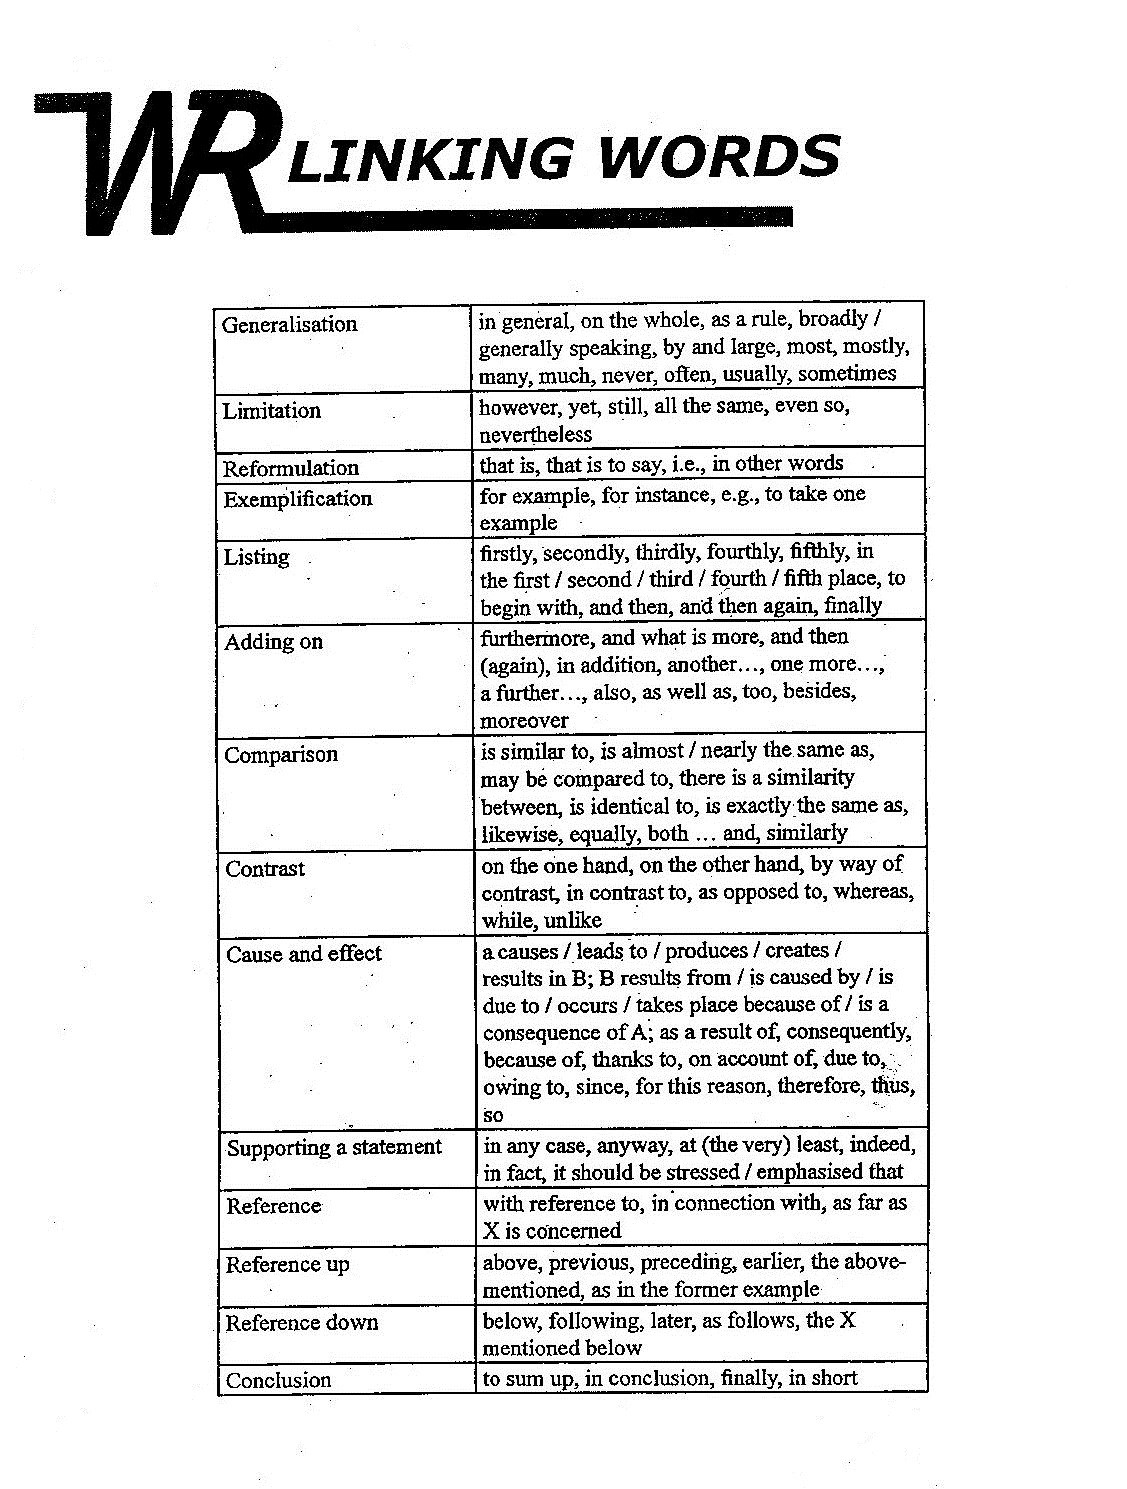 003 Essay Example Connecting Words For Essays Greed French Paragraph On To Start Conclusion In An Stmlk Begin Persuasive The First Body Argumentative Off Sentence Incredible Pdf Ielts Full